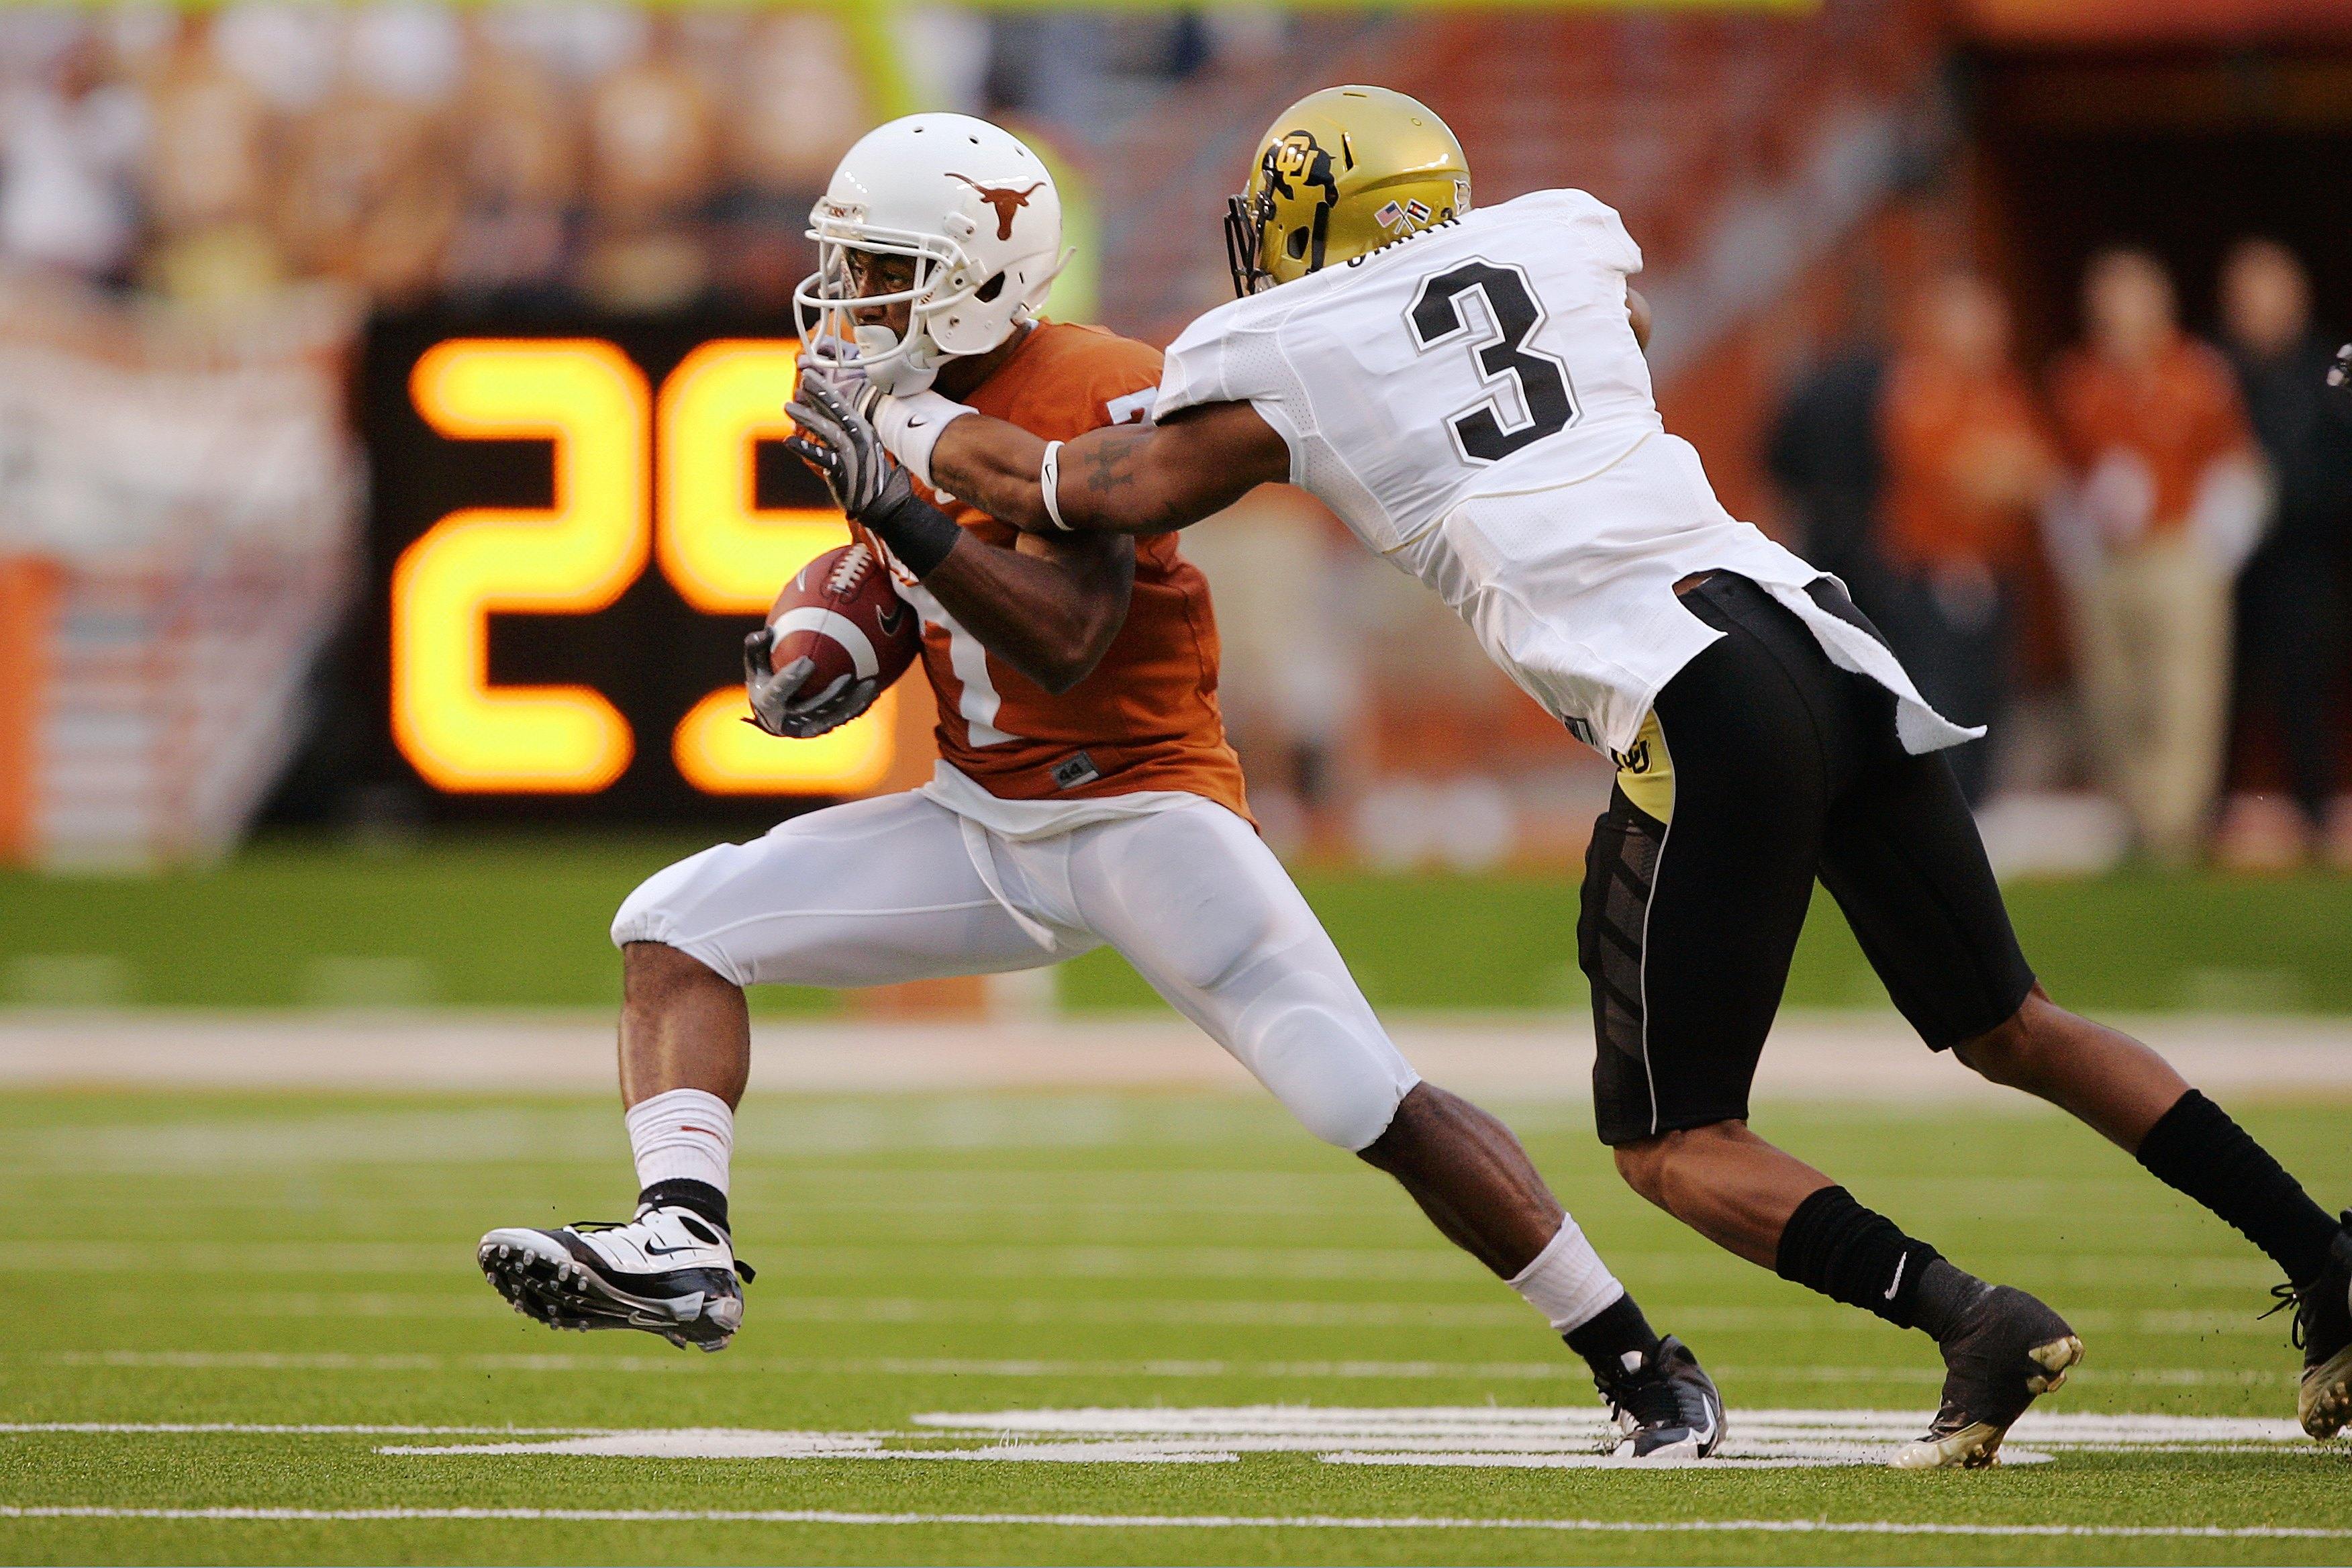 AUSTIN, TX - OCTOBER 10:  Wide receiver John Chiles #7 of the Texas Longhorns makes a quick cut after catching a pass against cornerback Jimmy Smith #3 of the Colorado Buffaloes in the first quarter on October 10, 2009 at Darrell K Royal-Texas Memorial St